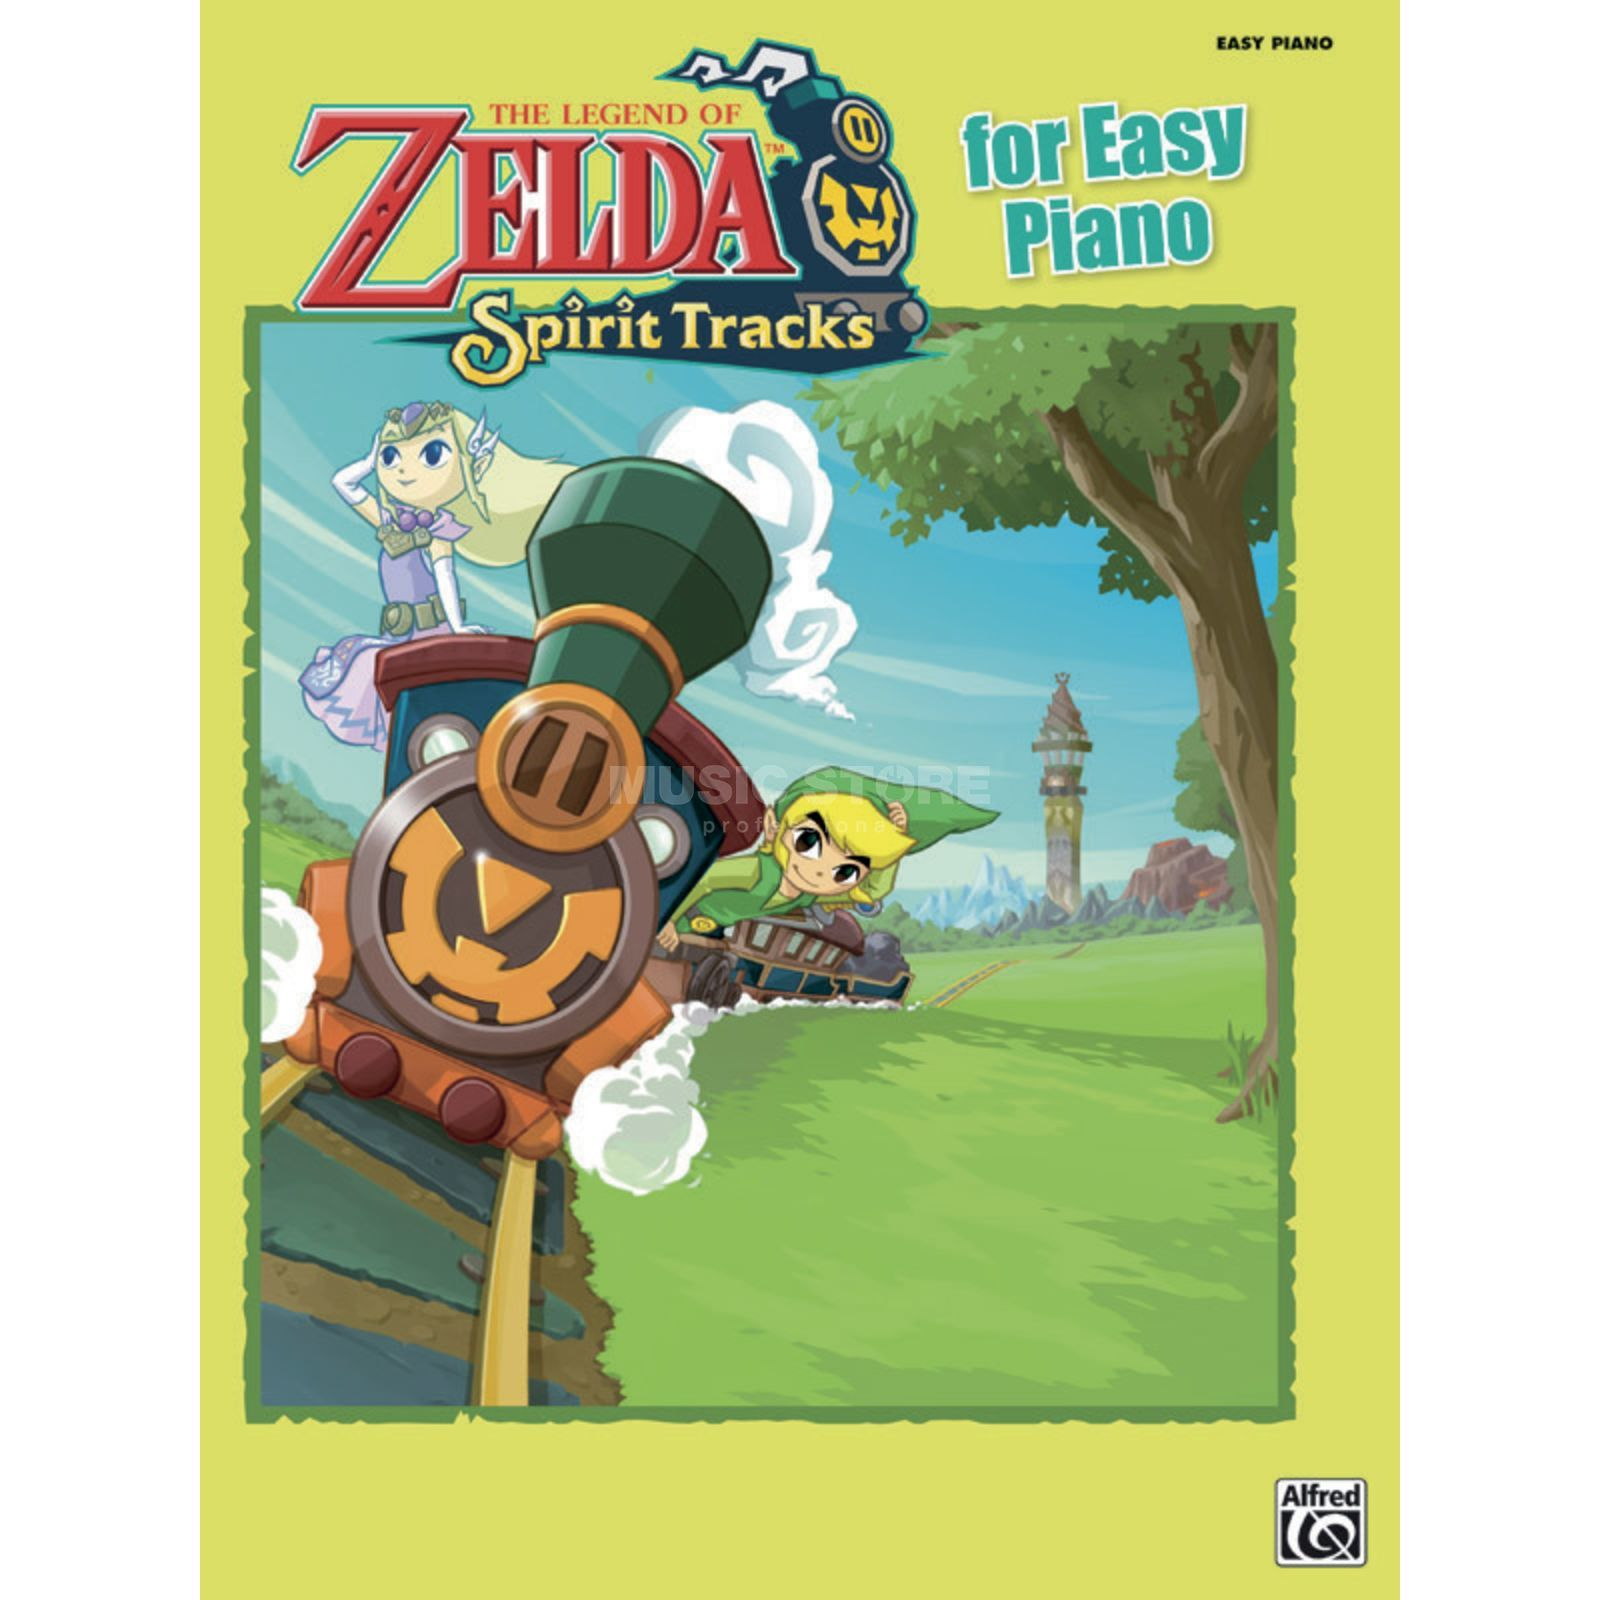 Alfred Music The Legend of Zelda: Spirit Tracks for Easy Piano Produktbillede